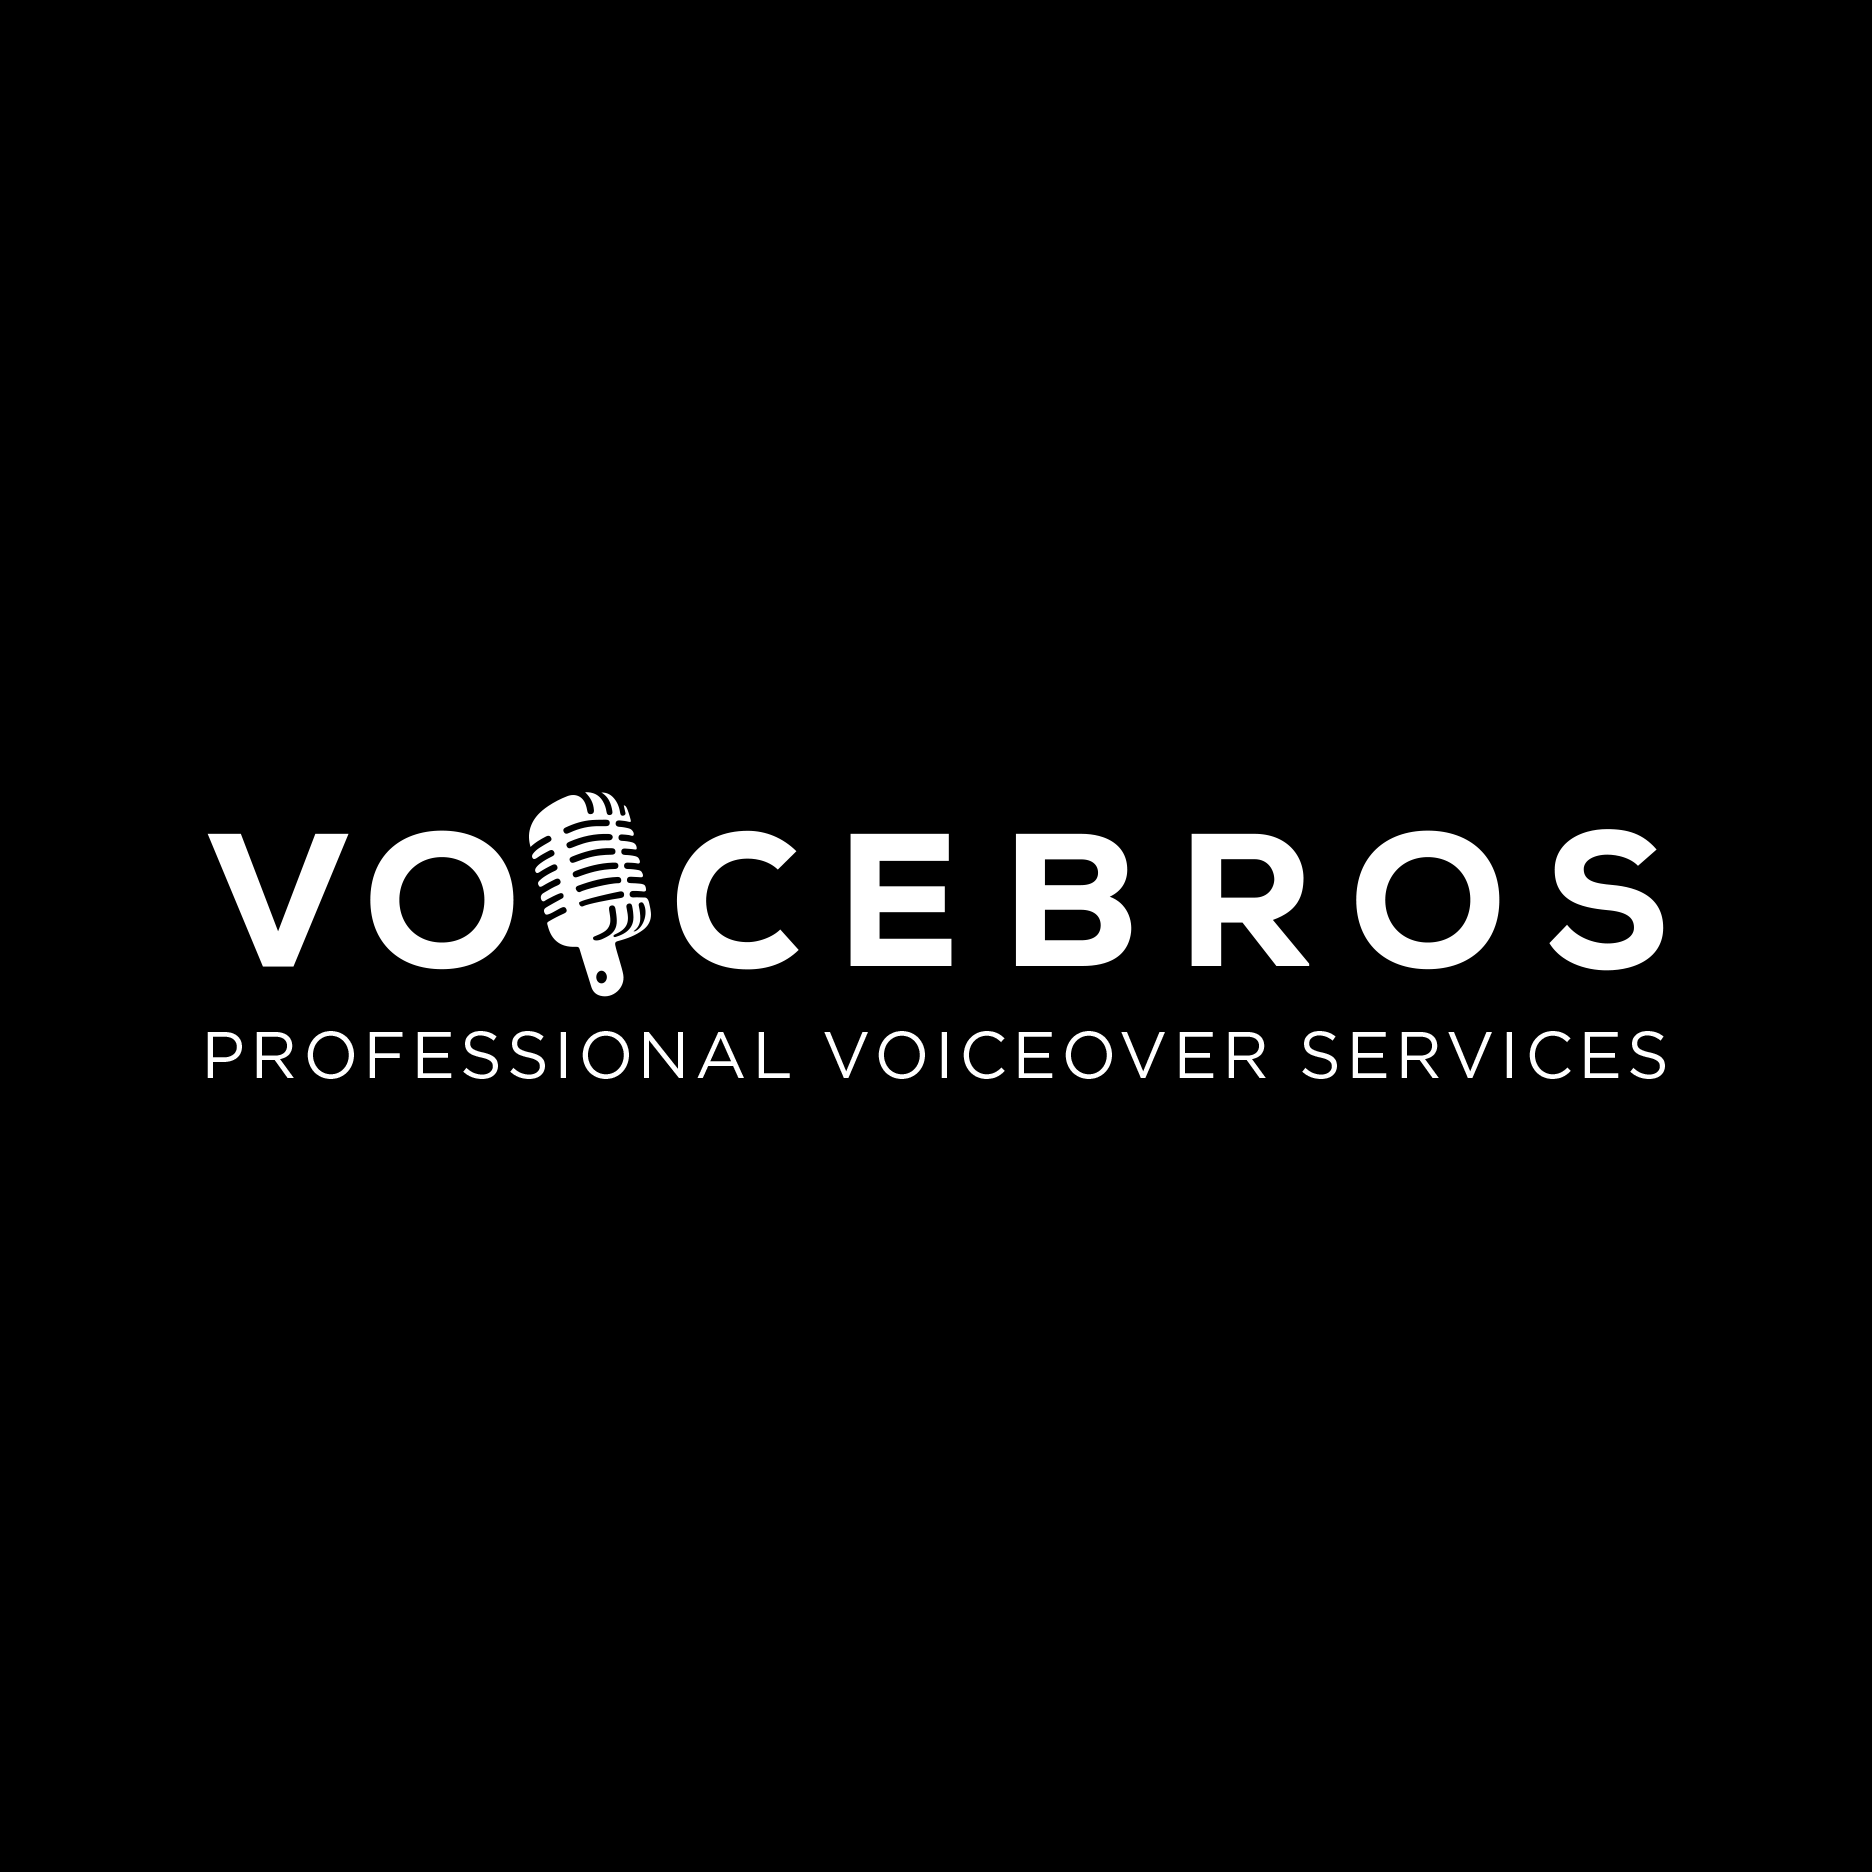 Claire-Louise Worby is a voice over actor